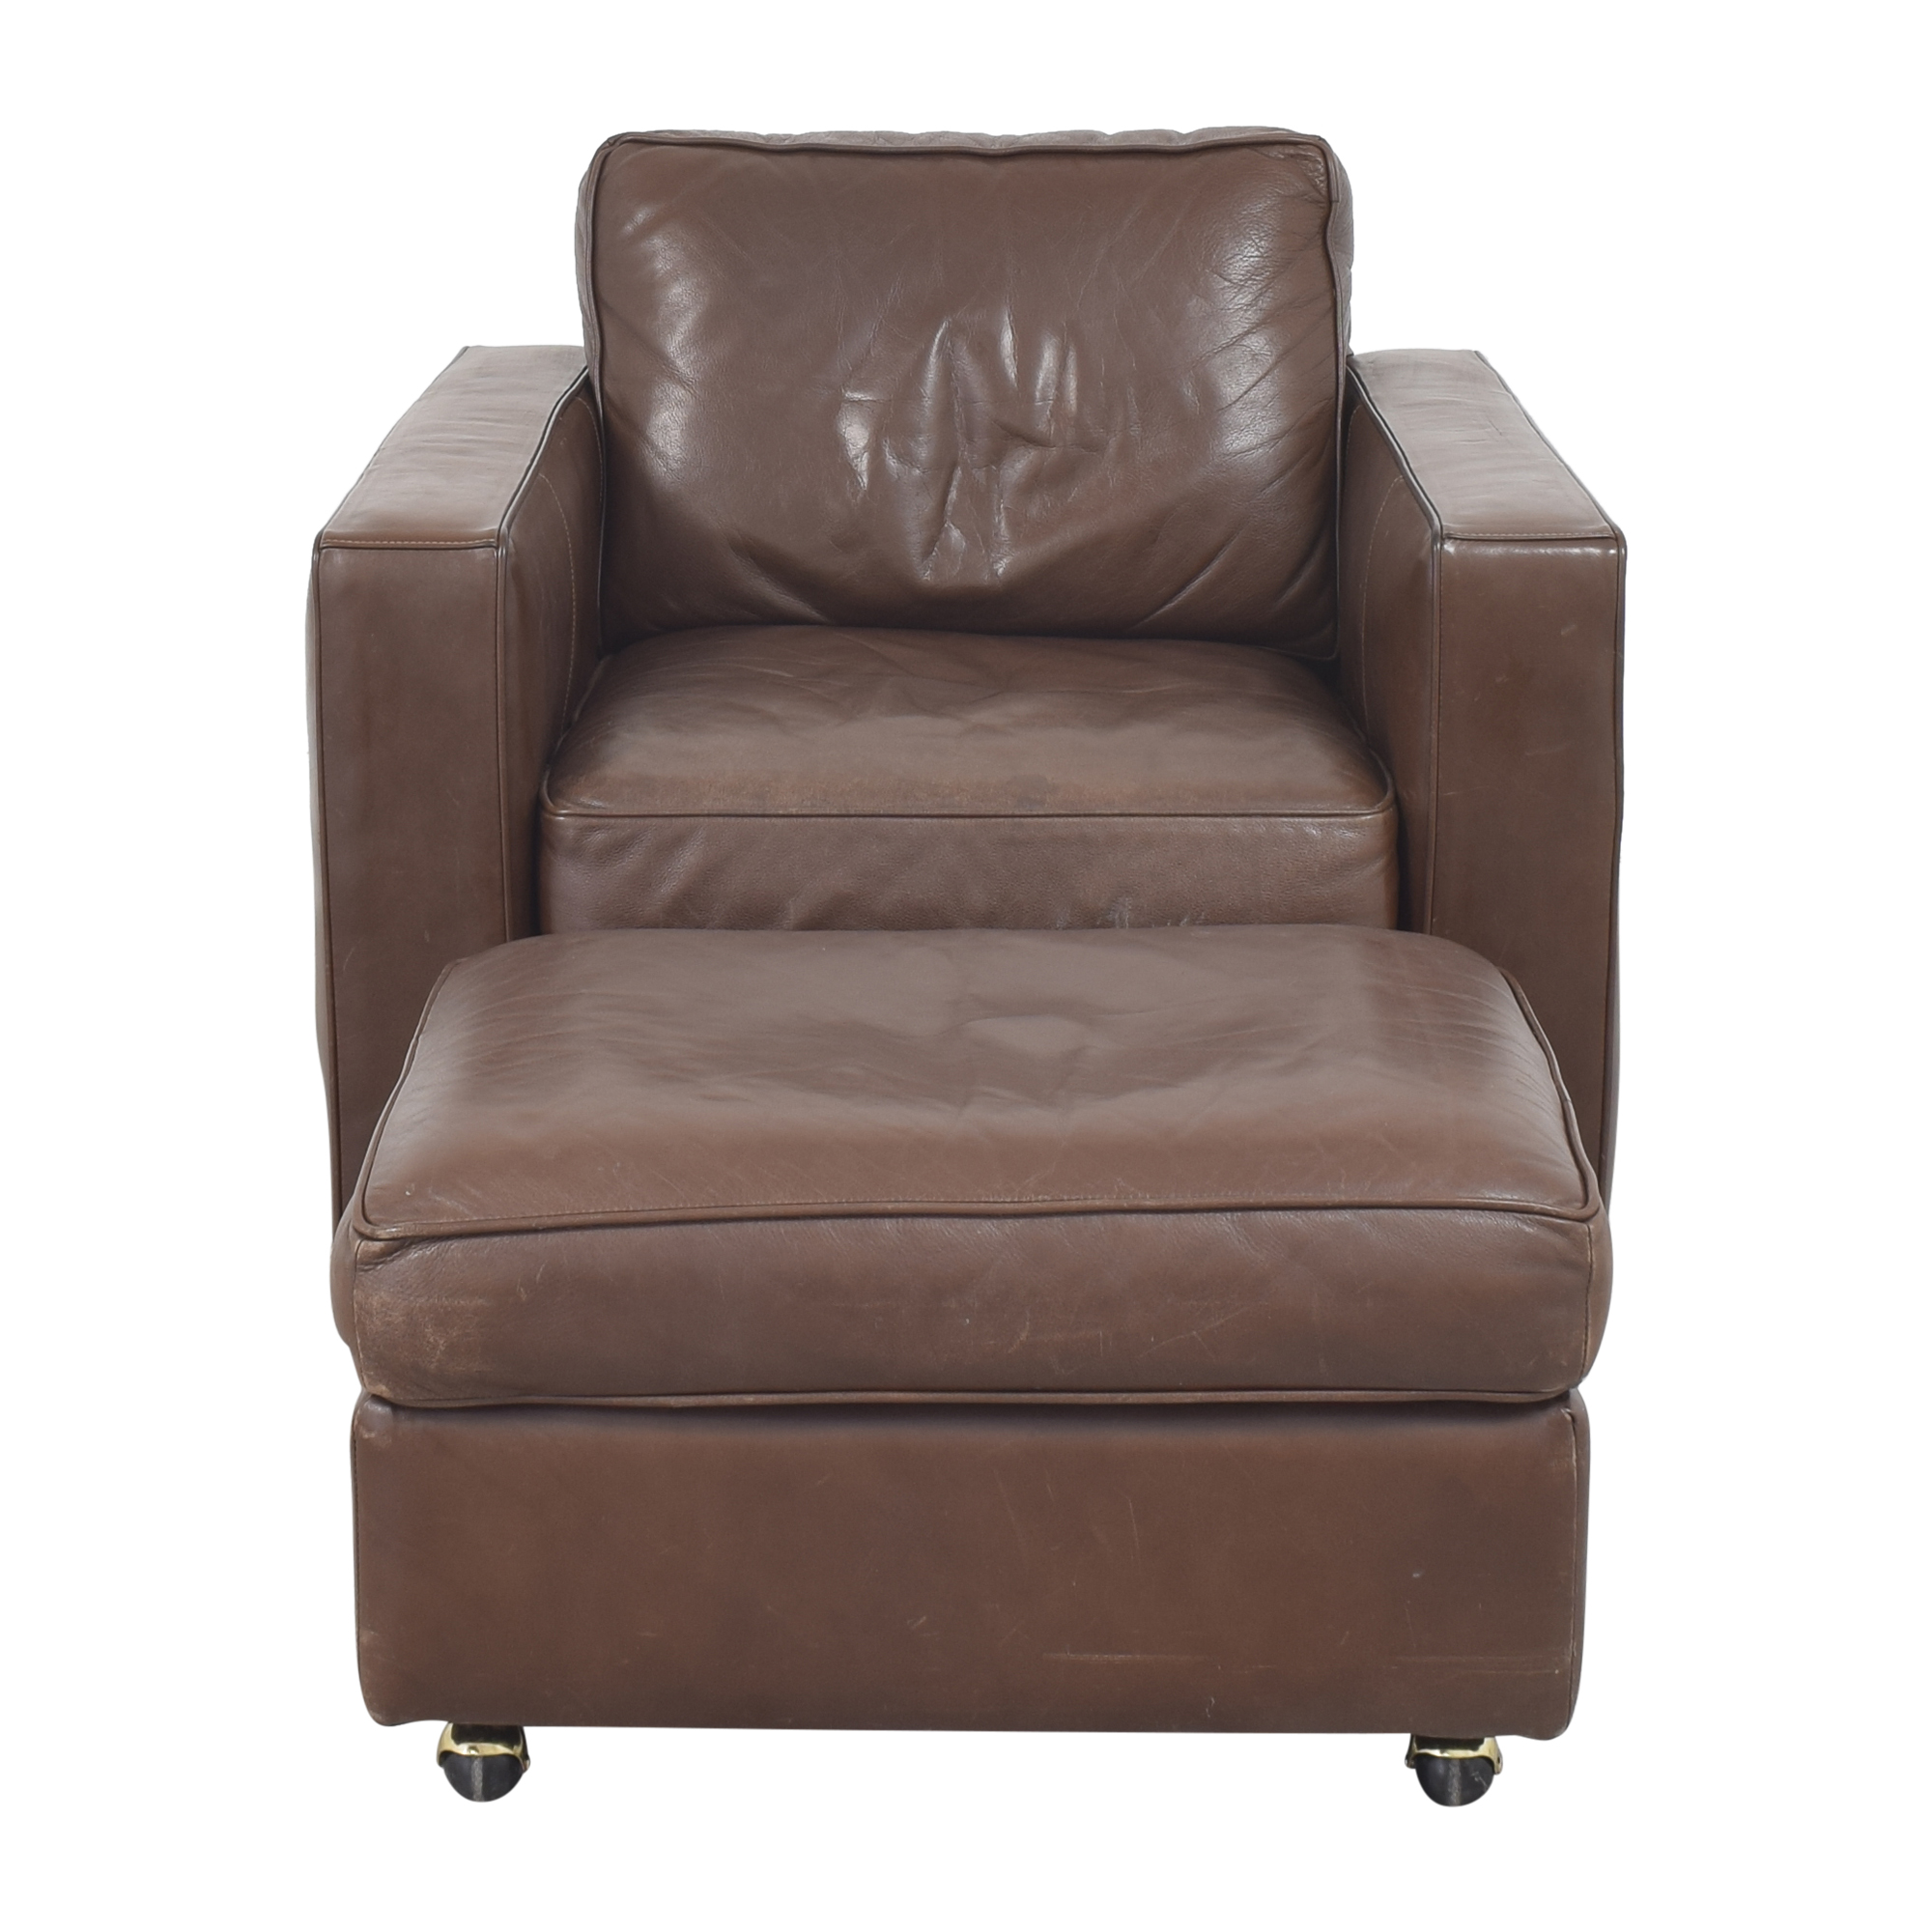 Room & Board Room & Board Accent Chair with Ottoman pa